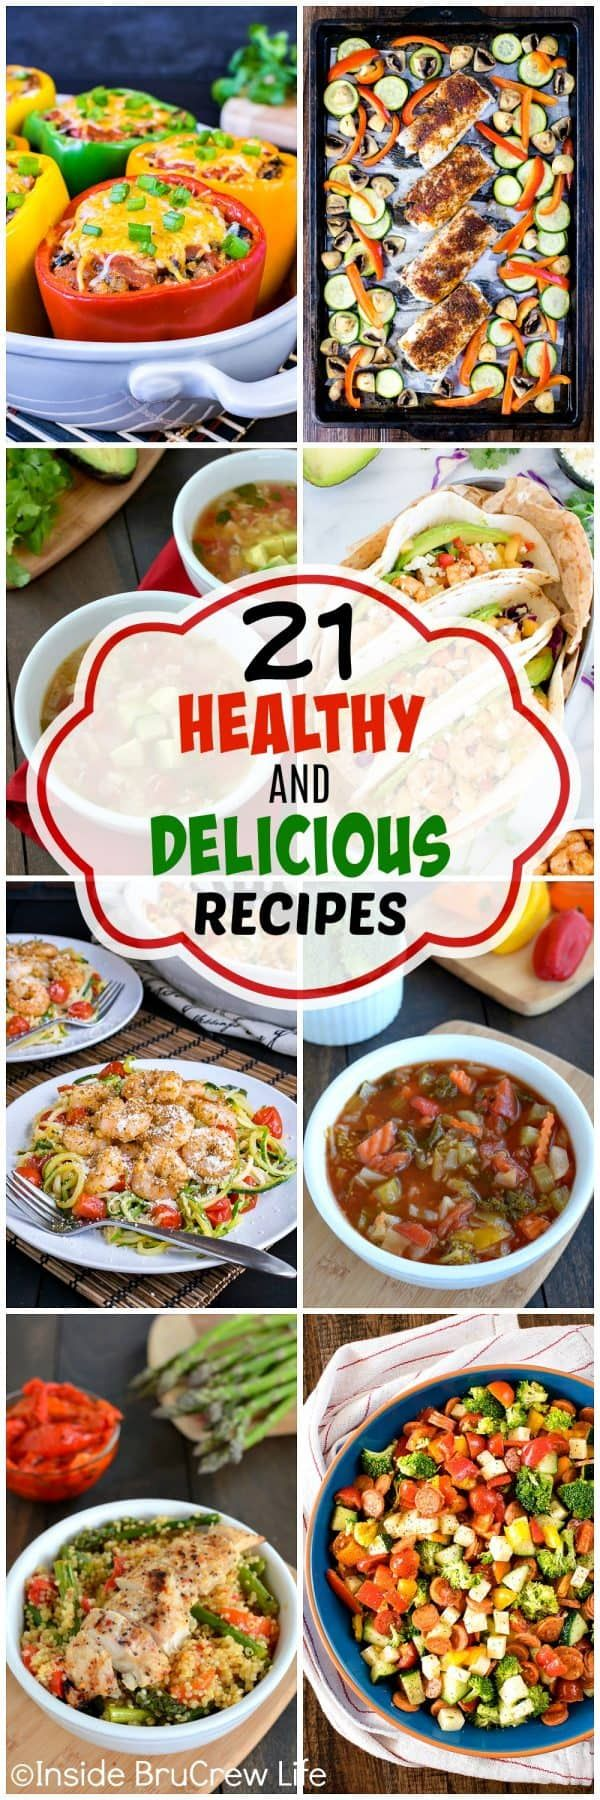 21 Healthy and Delicious Recipes - plan a month of meals using these easy and healthy recipes. Easy recipes to help you with your health journey! #healthy #recipes #newyear #leanandgreen #healthyeats #dinners #healthydinner